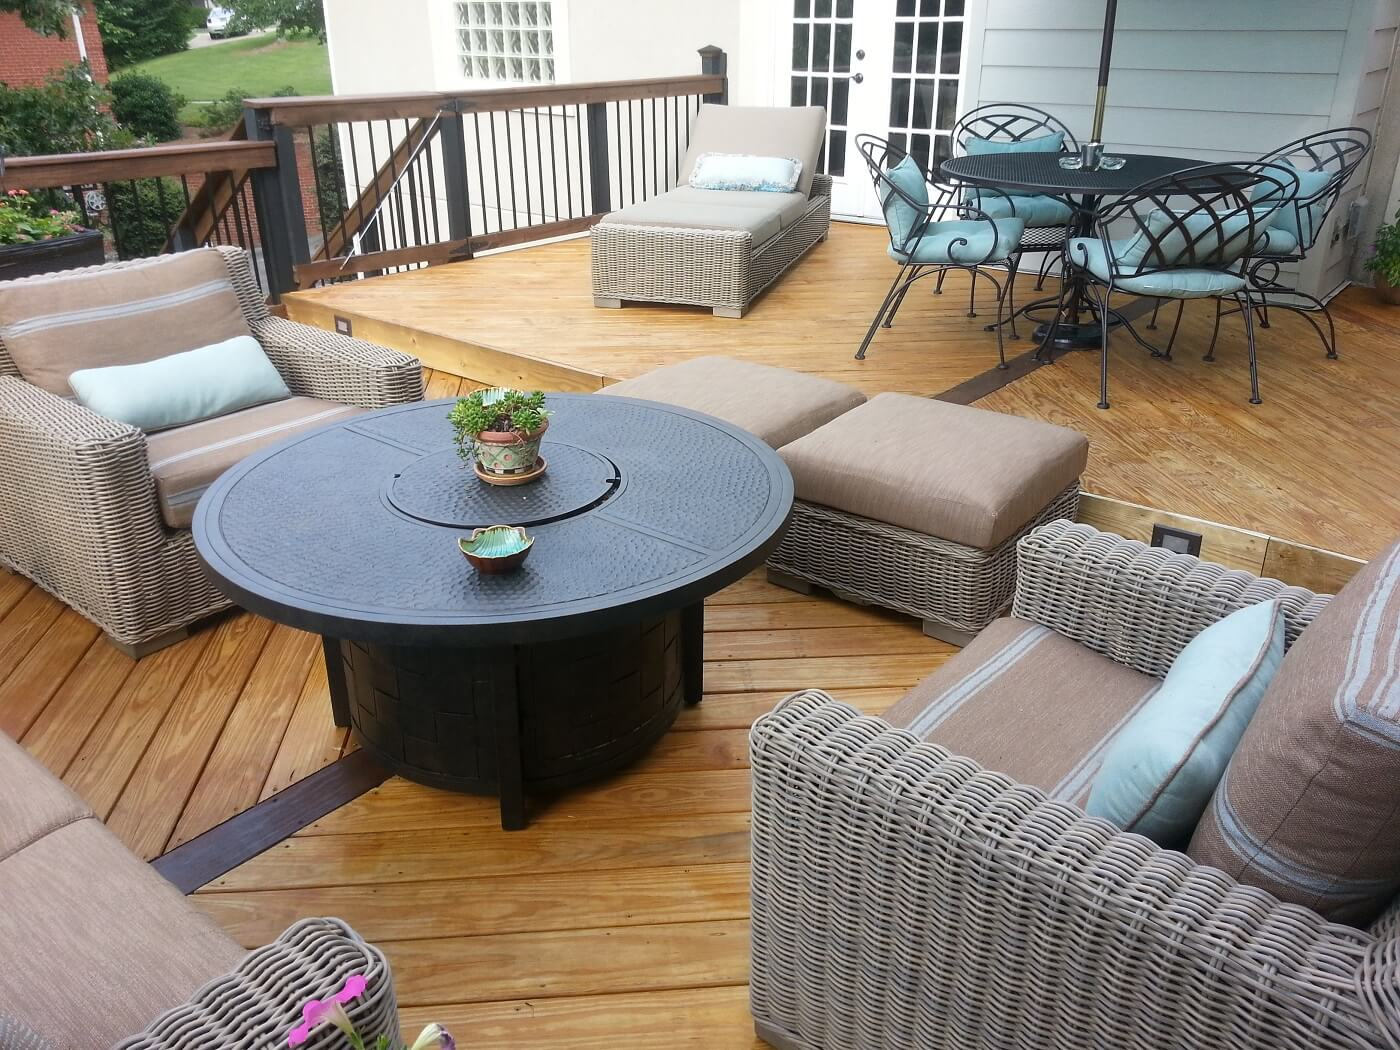 Custom wood deck with balusters and lounge area